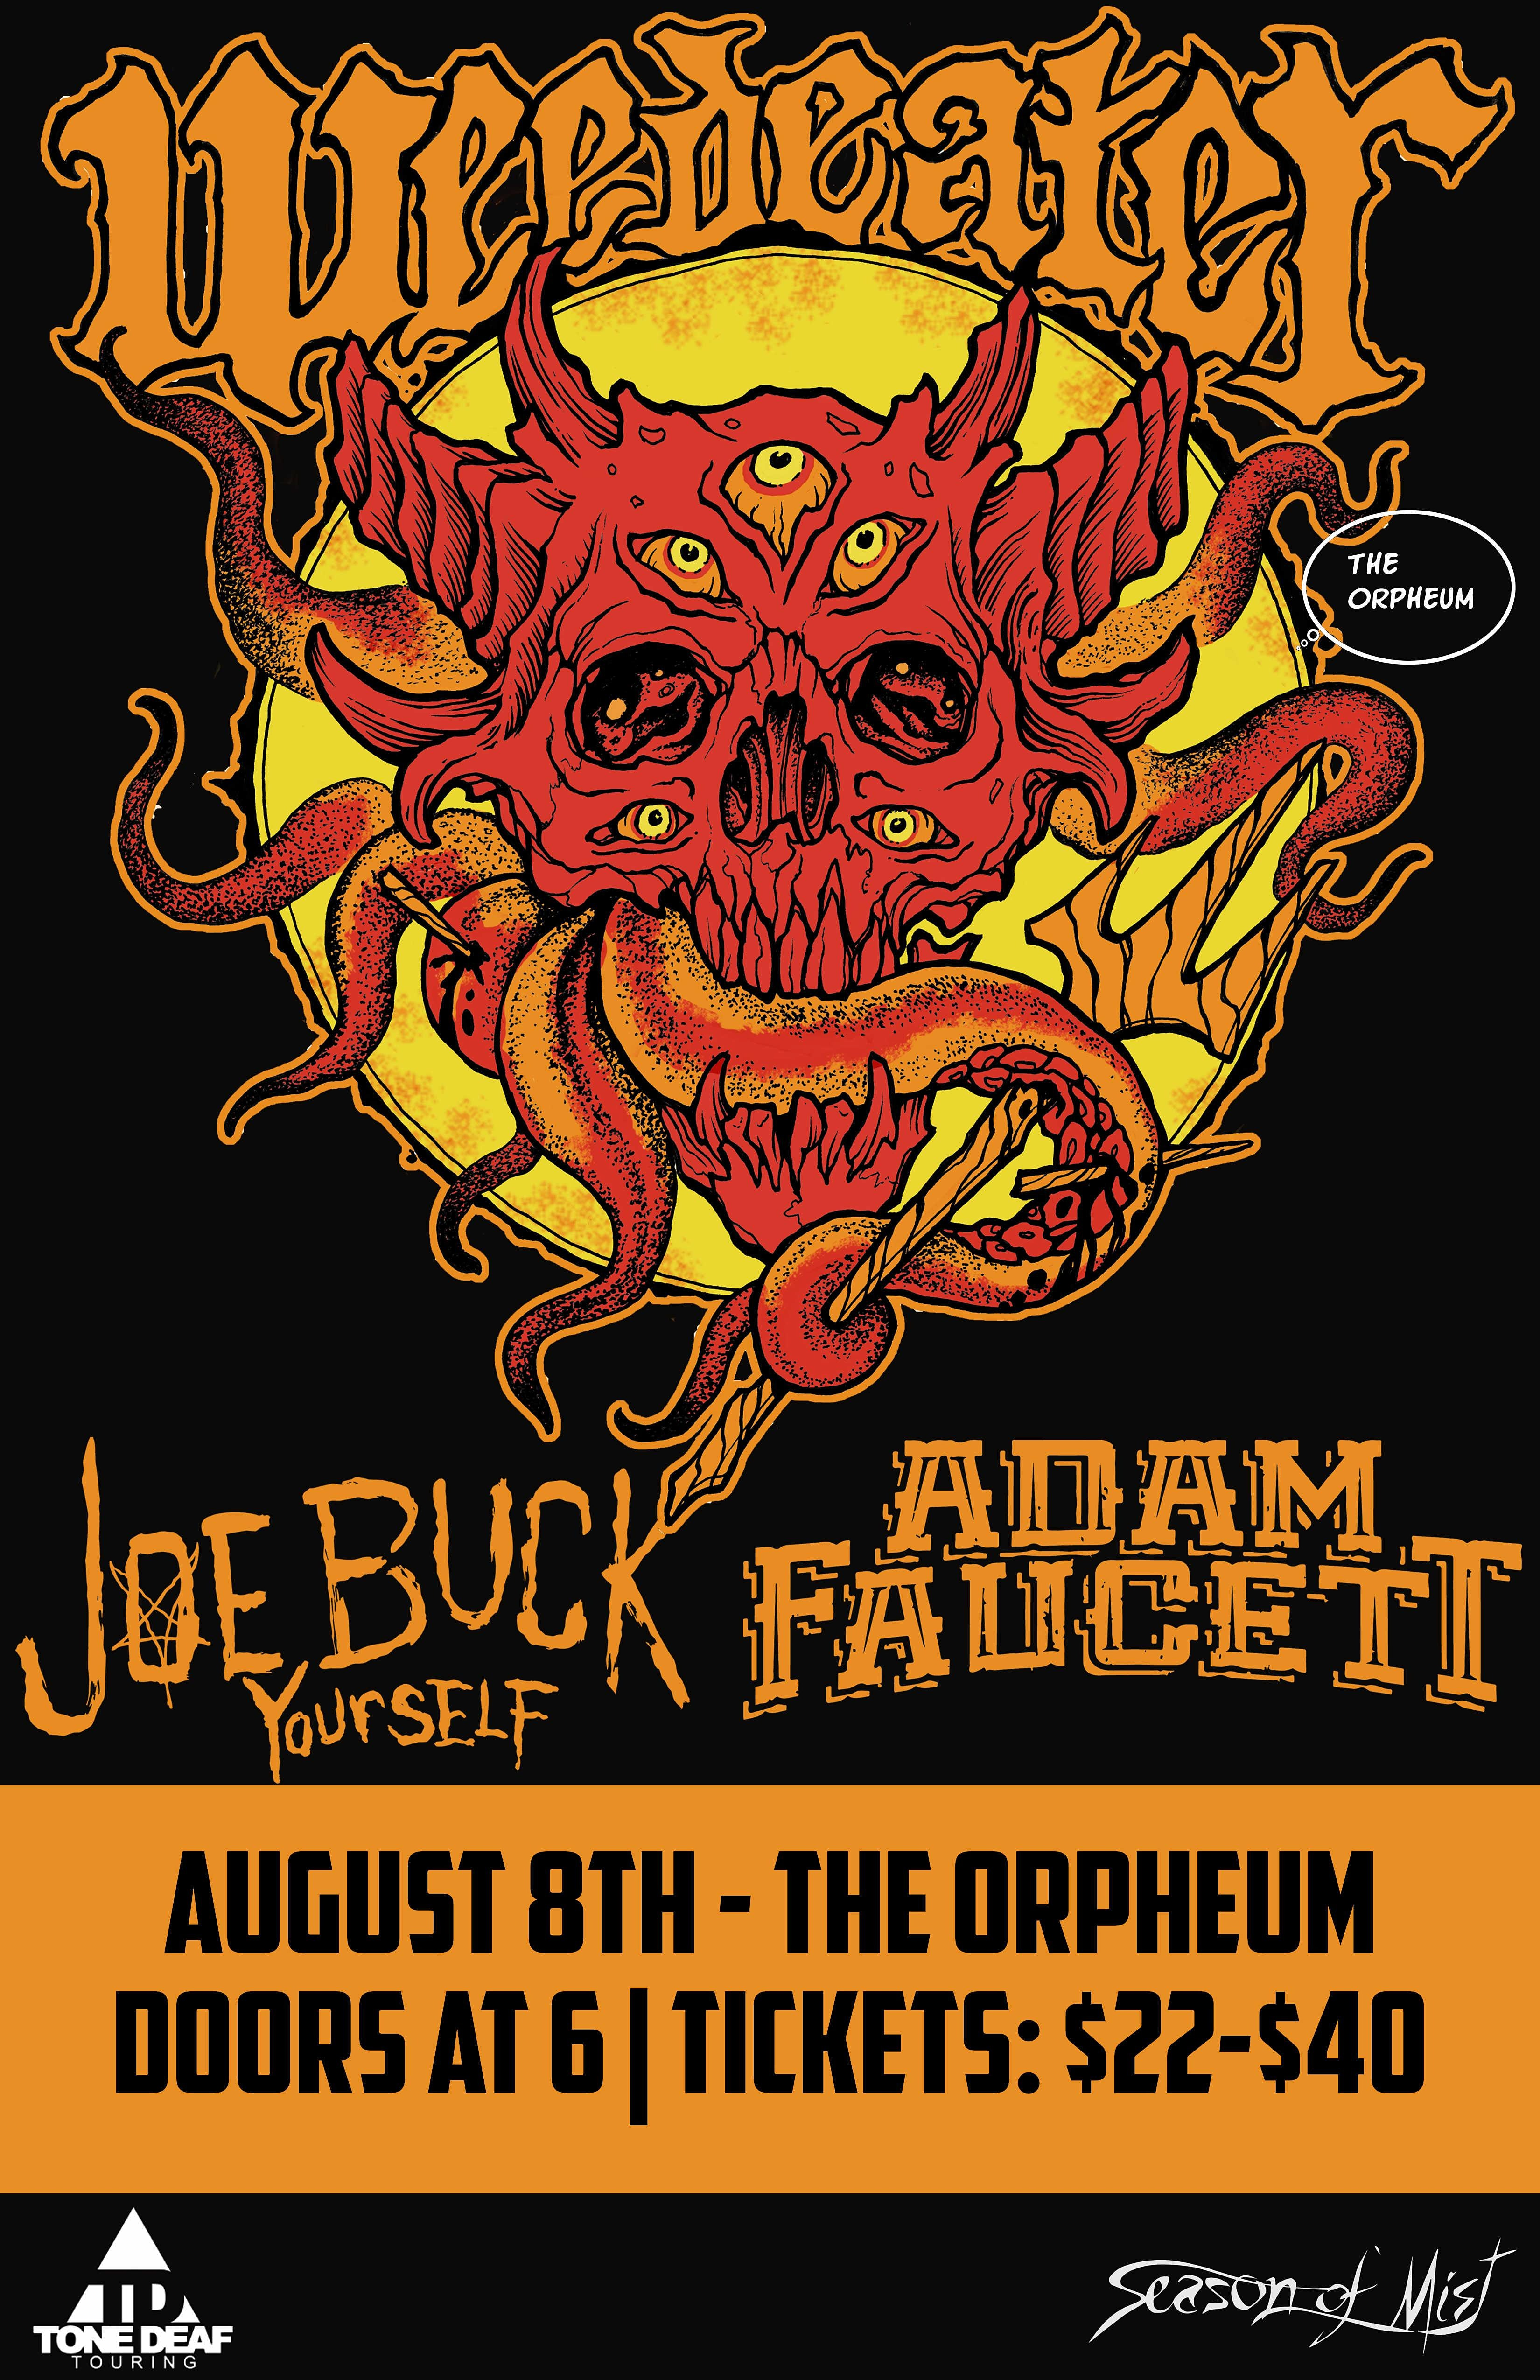 Weedeater, Joe Buck Yourself, and Adam Faucett in Tampa at the Orpheum.